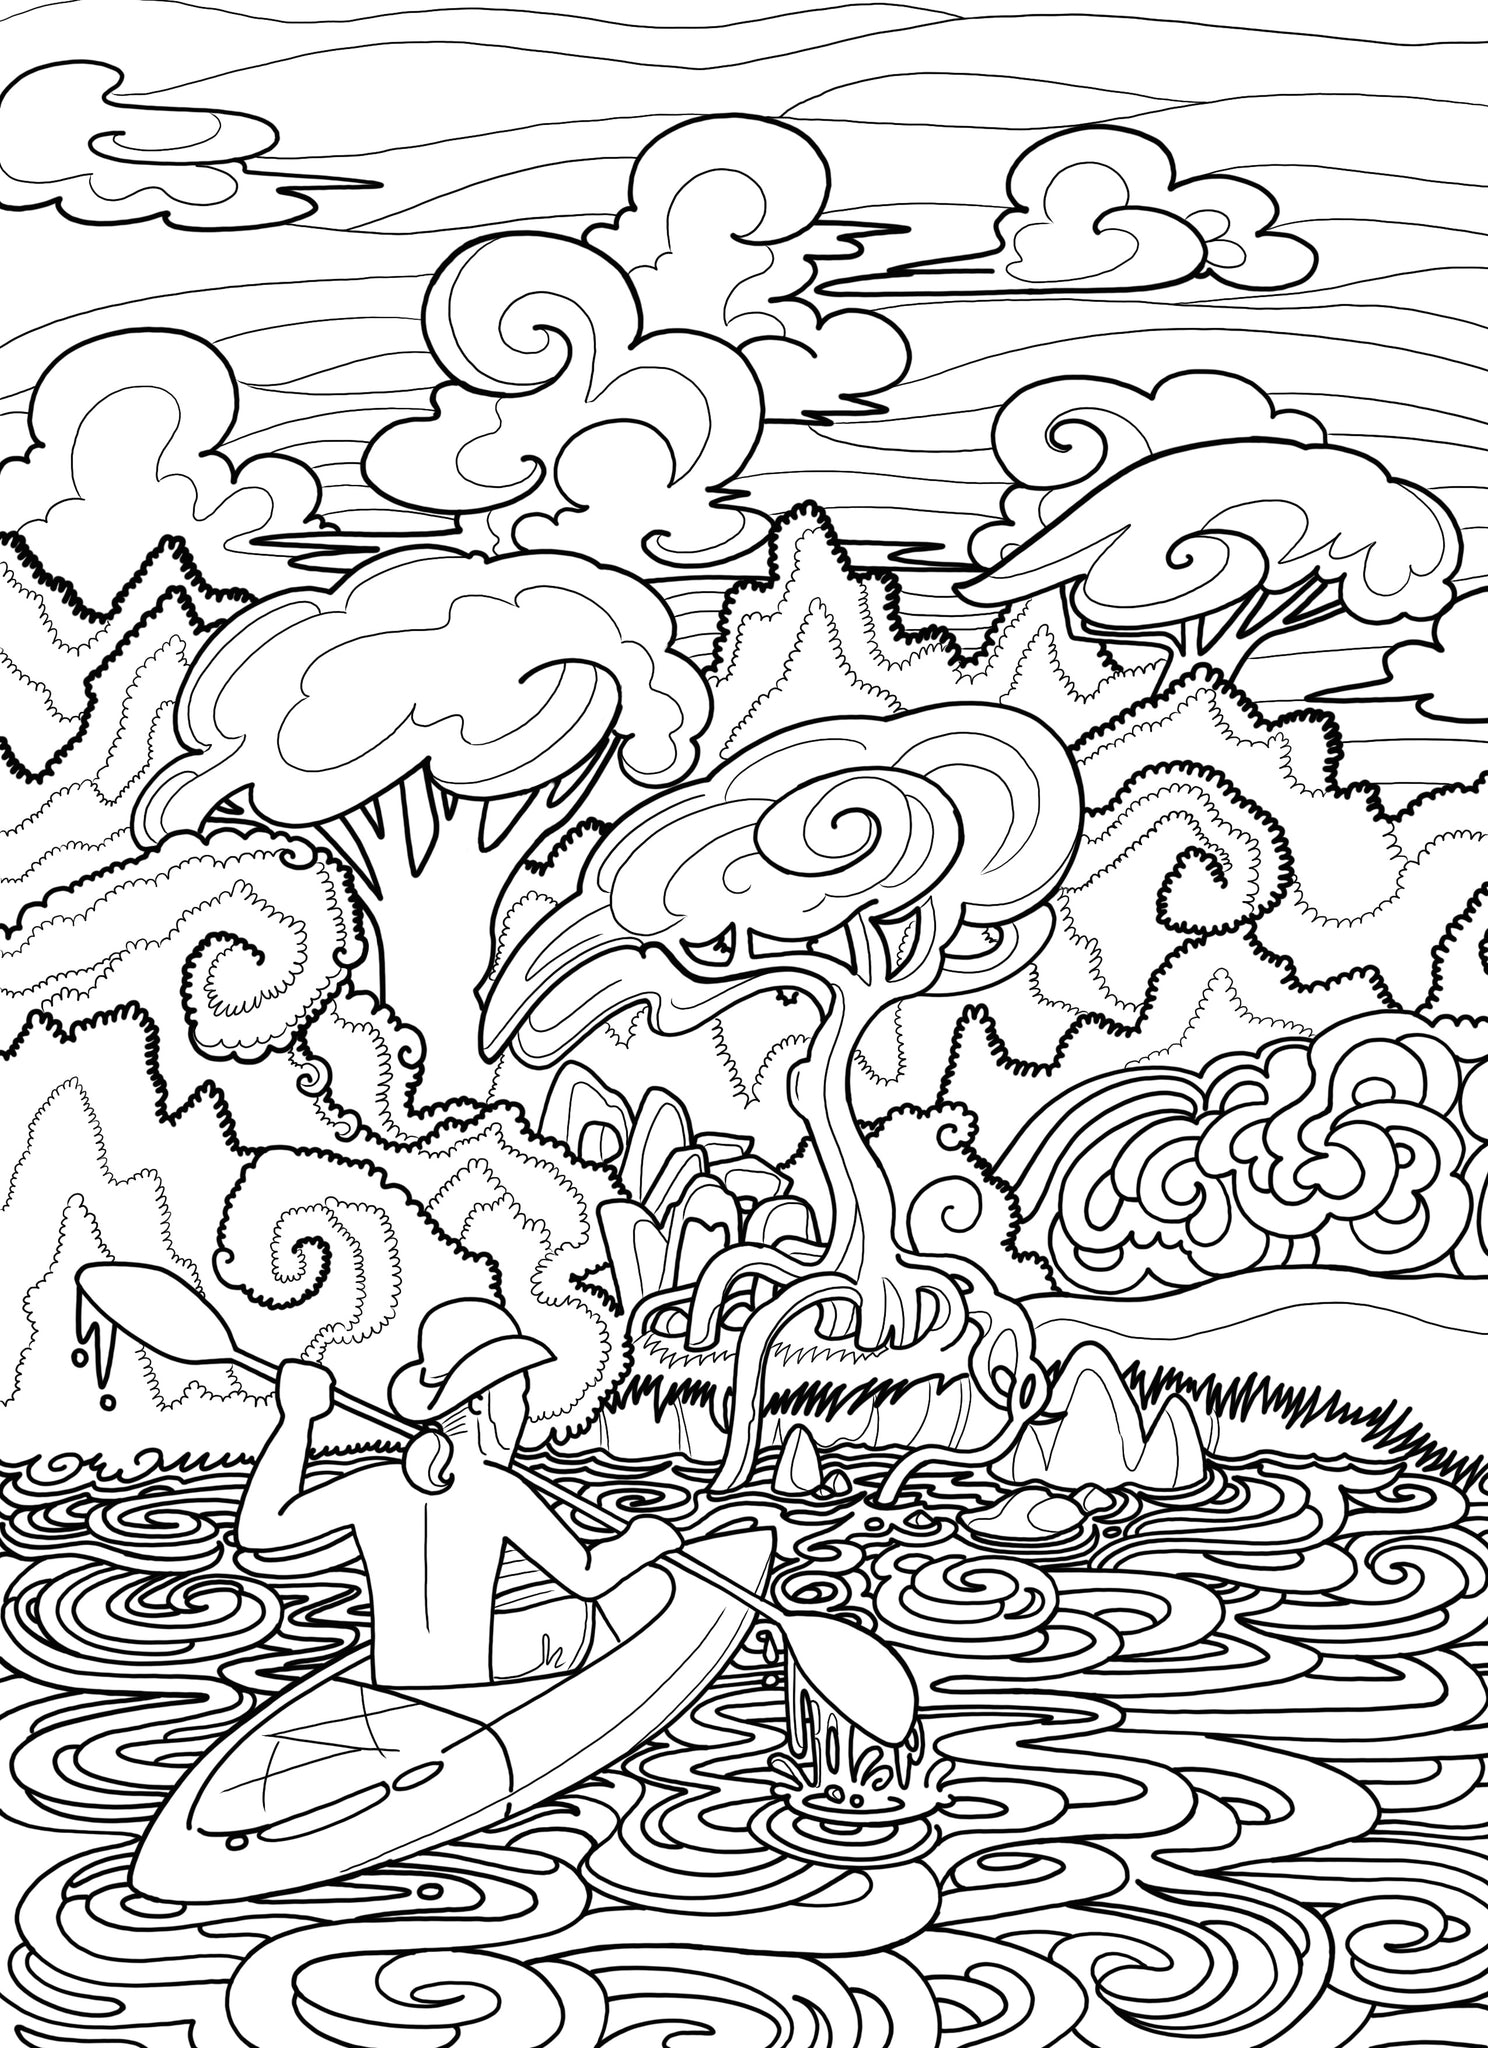 Kayak Coloring Page - Borrelli Illustrations